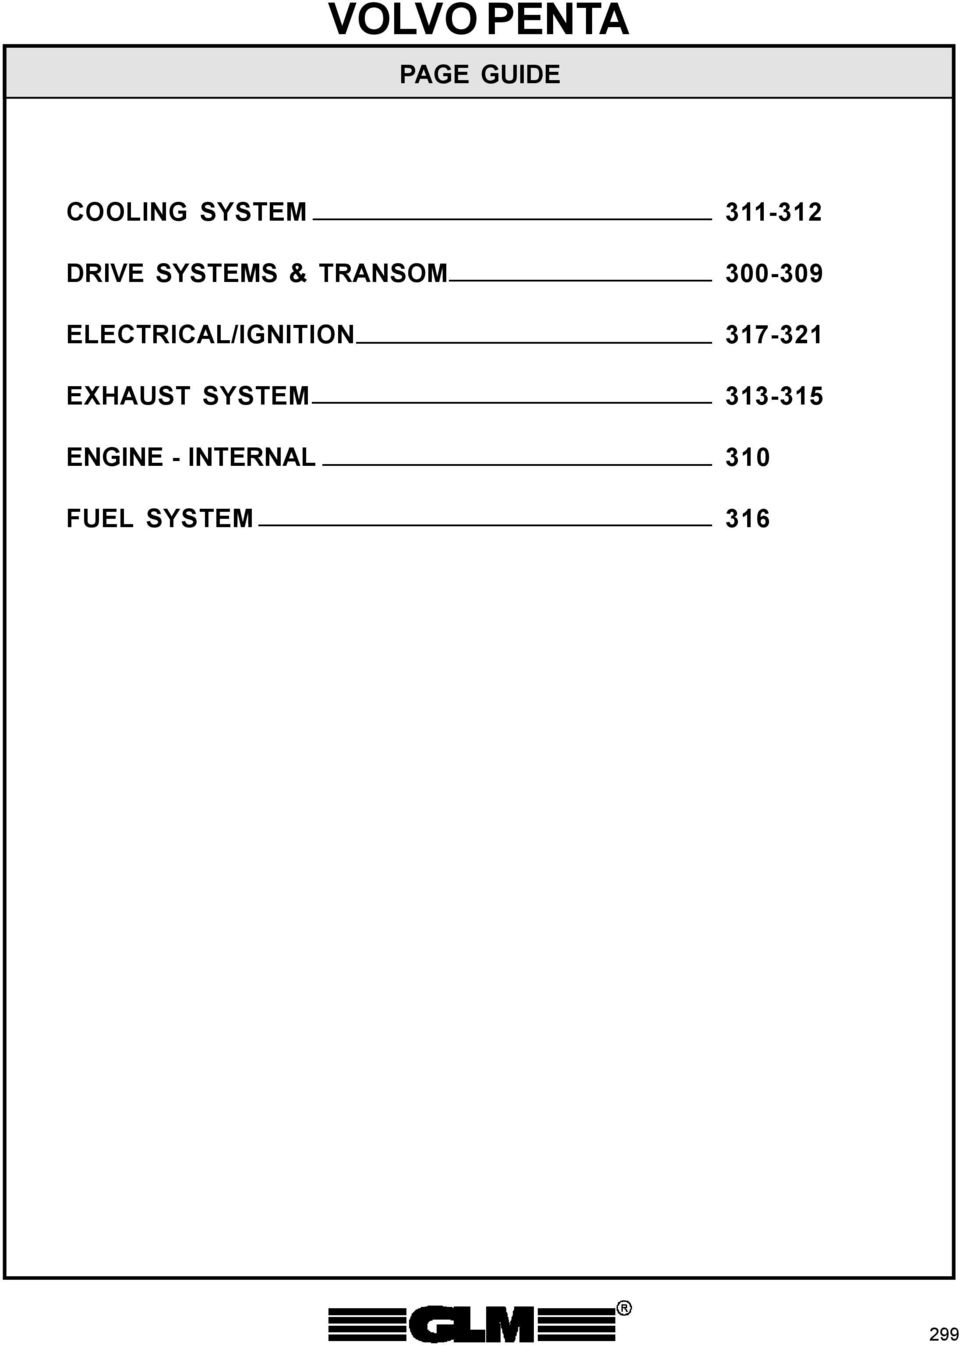 Volvo Penta Page Guide Cooling System Drive Systems Transom 270 Trim Wiring Diagram Transcription